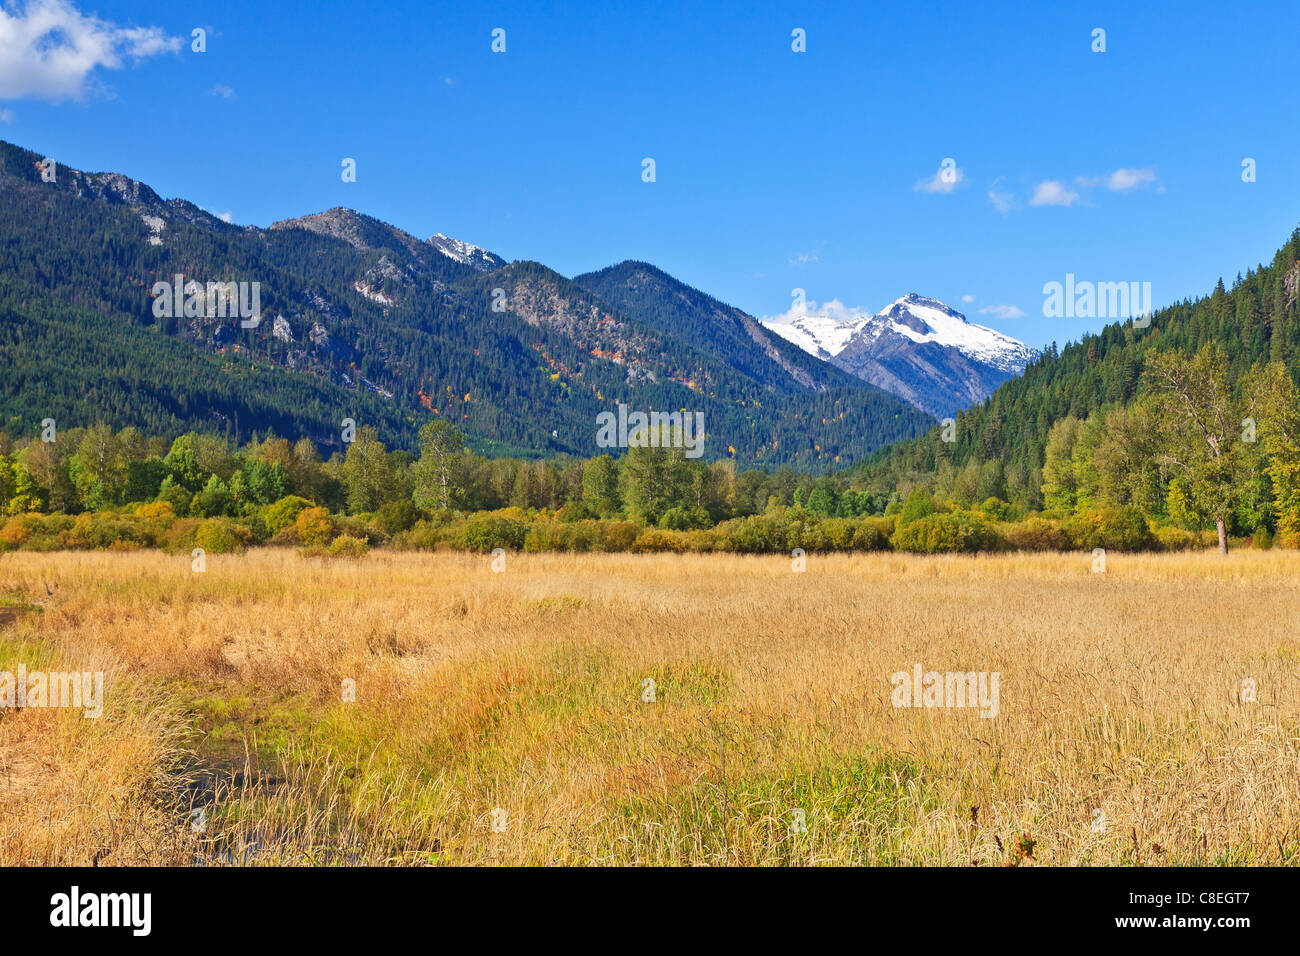 Grassy field in the Fall season with early snow in the high mountains - Stock Image